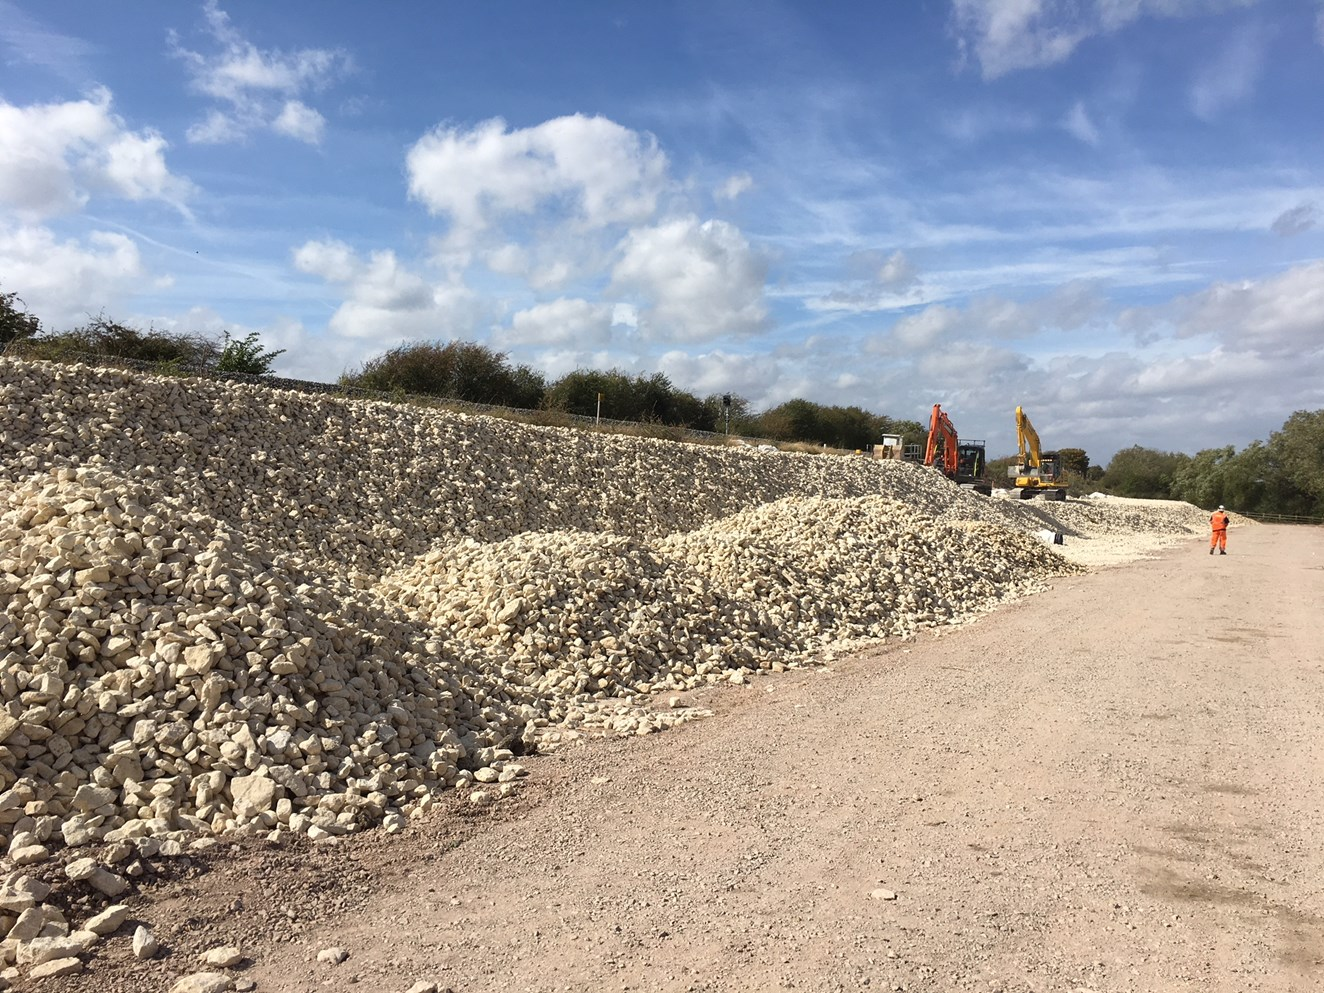 Repairs to the embankment on the Chiltern main line near Bicester